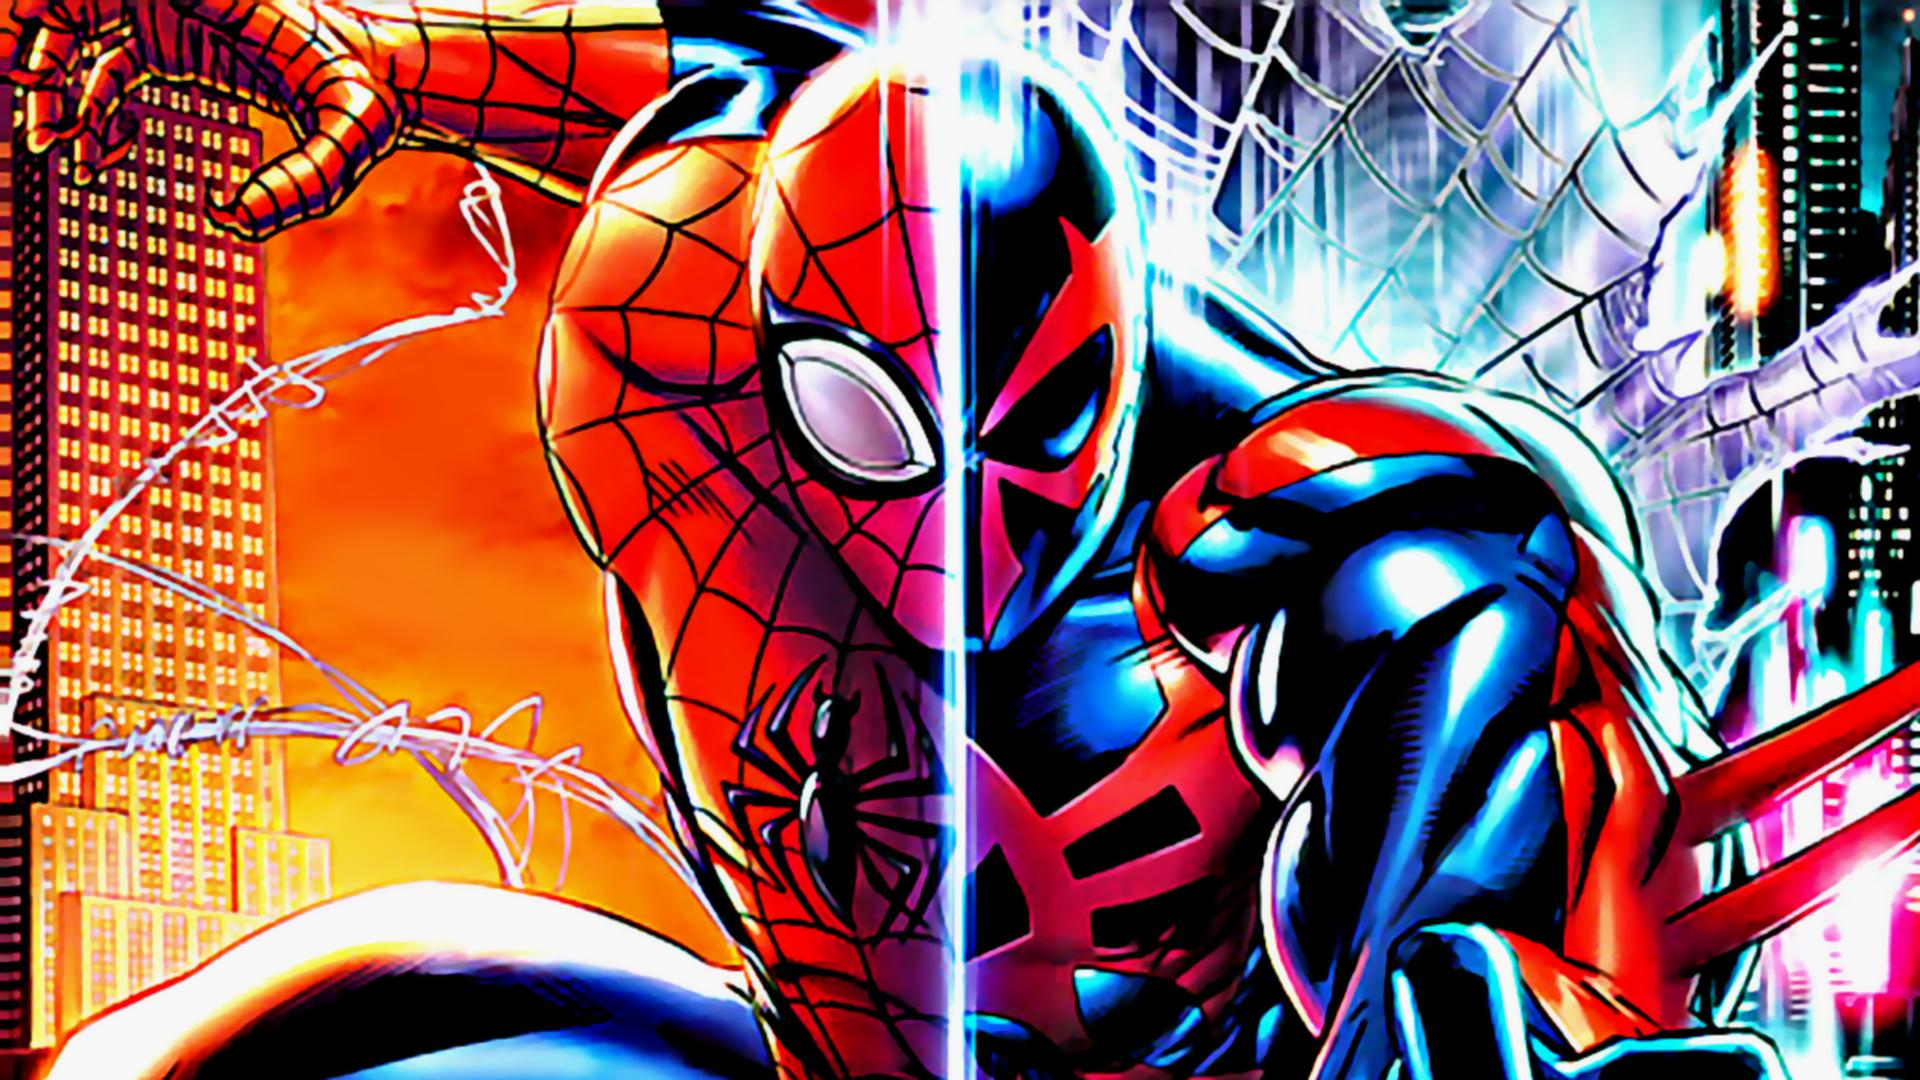 Spider Man 2099 Wallpapers   Top Spider Man 2099 Backgrounds 1920x1080